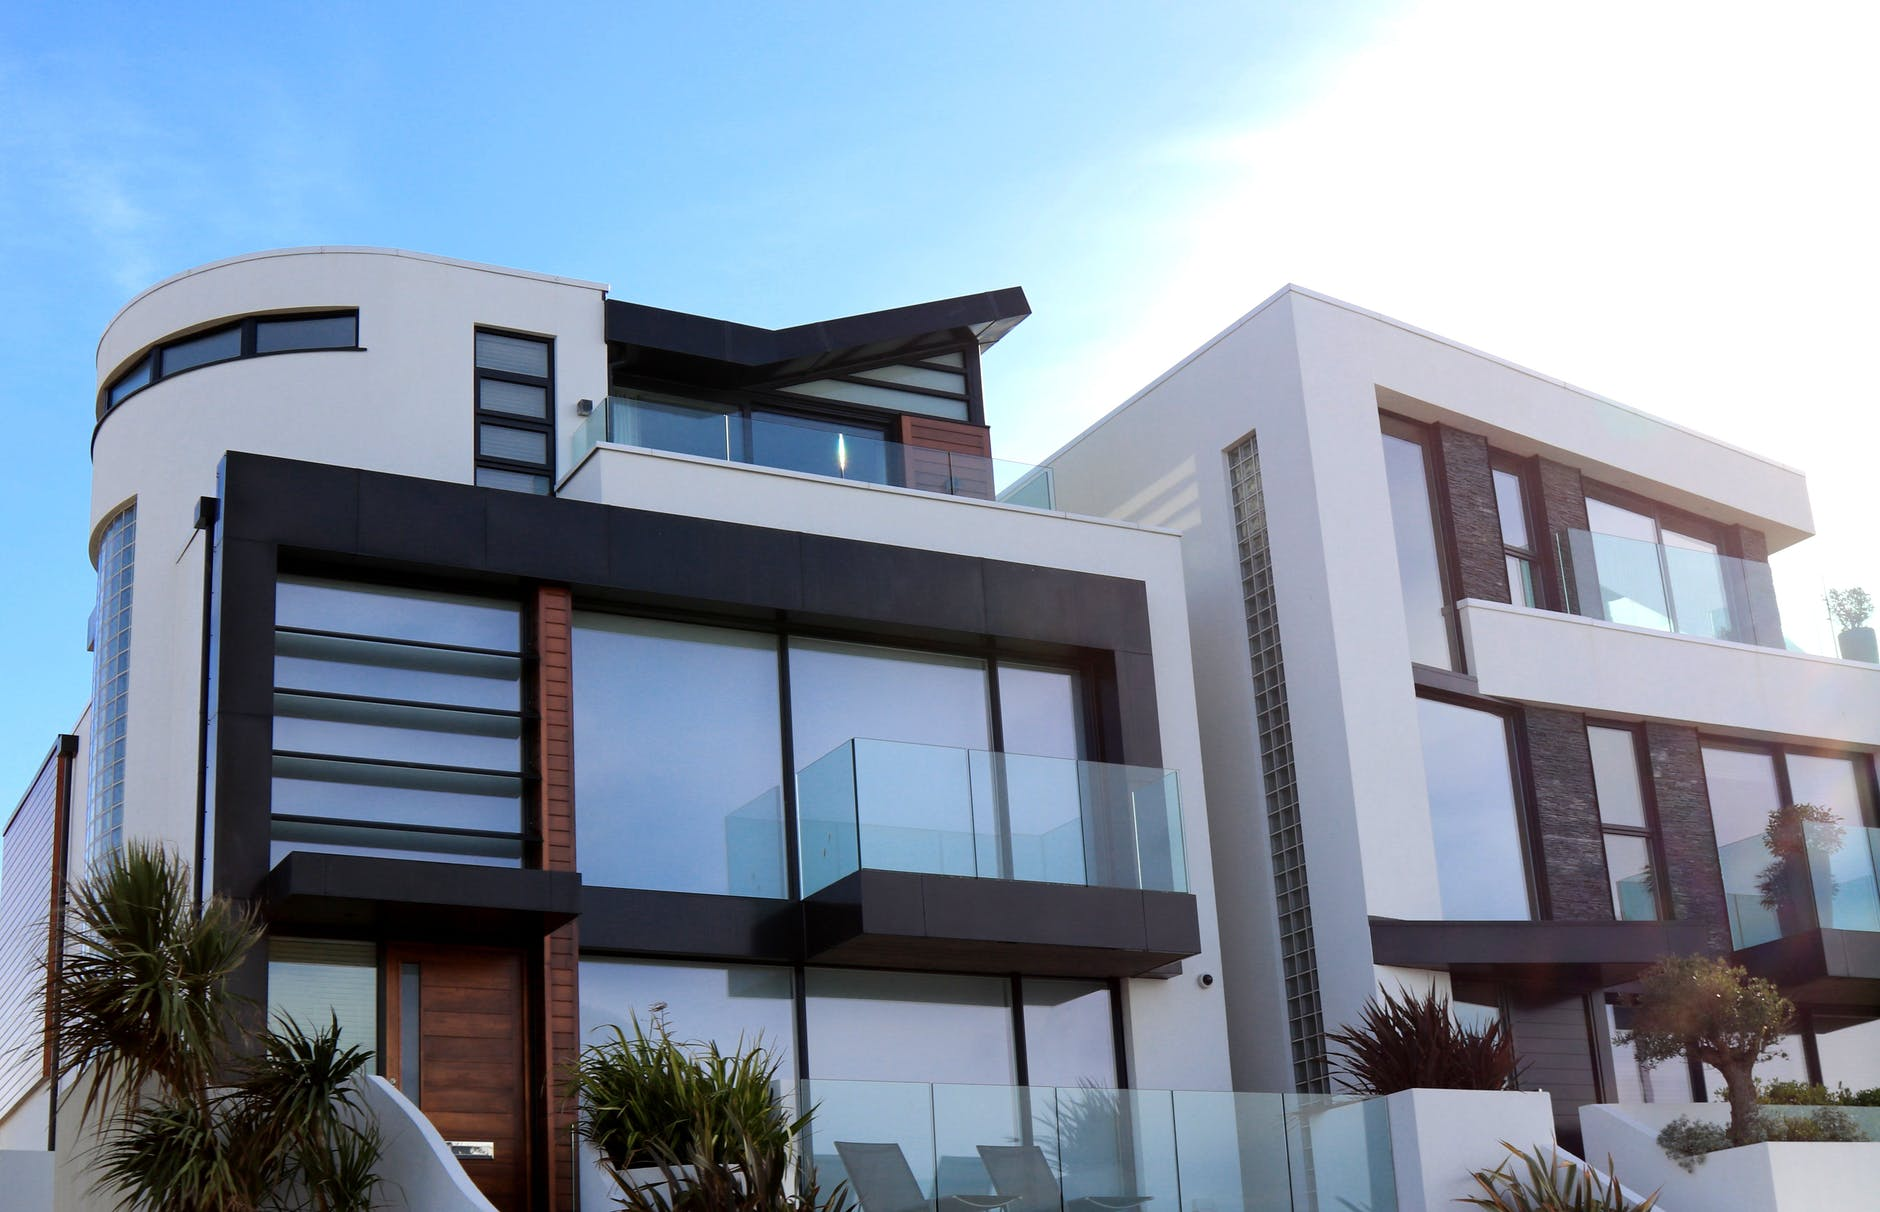 Modern building with glass doors walls and balconies